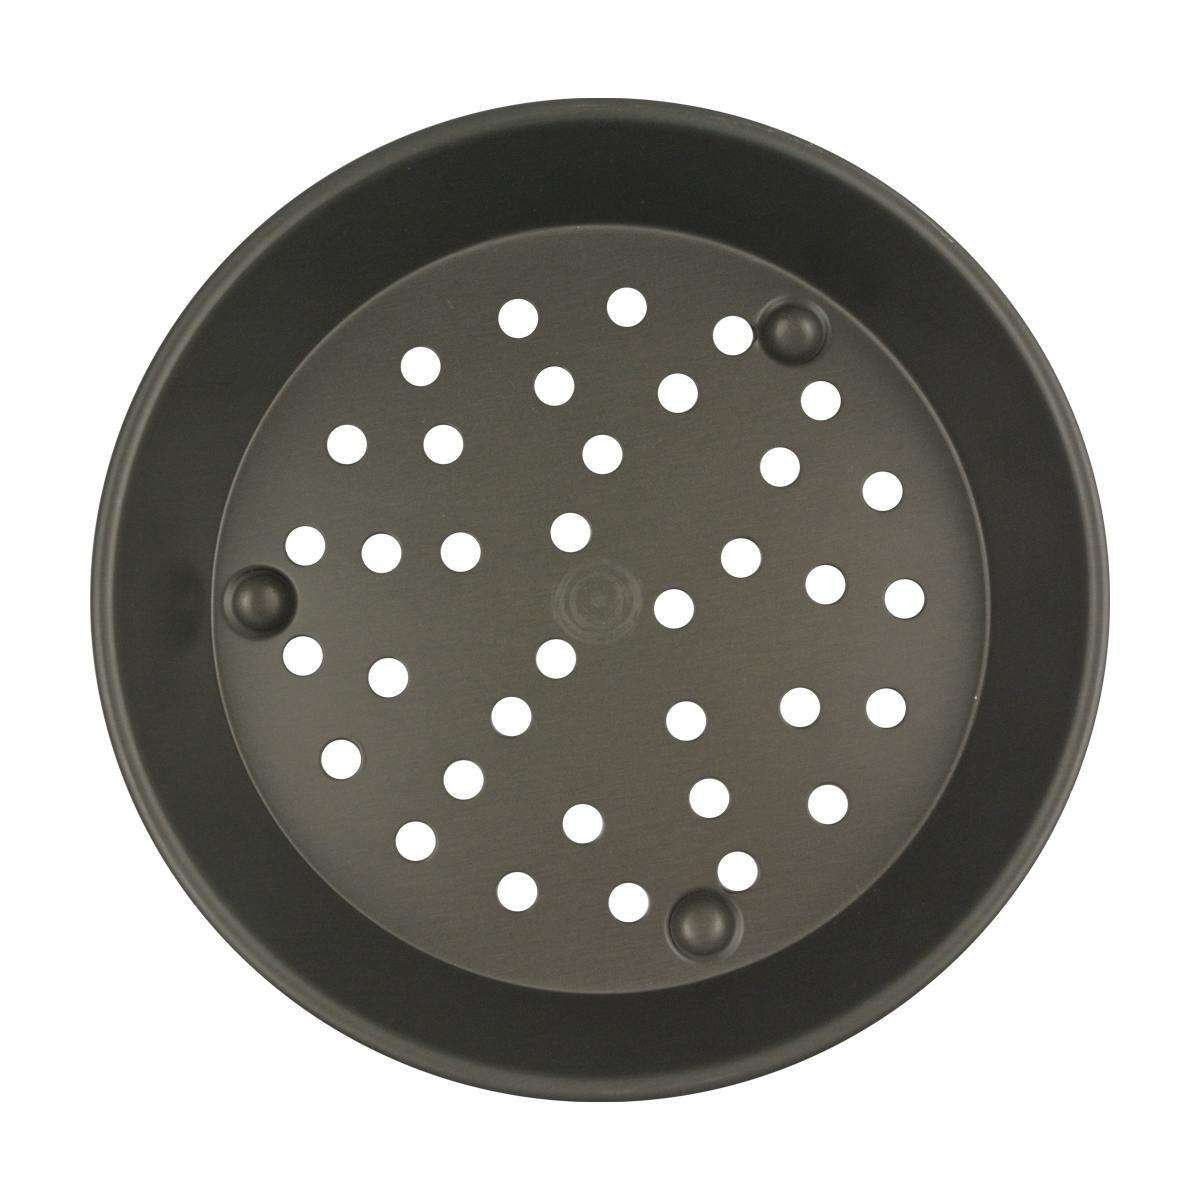 hard coated aluminum perforated pizza pan